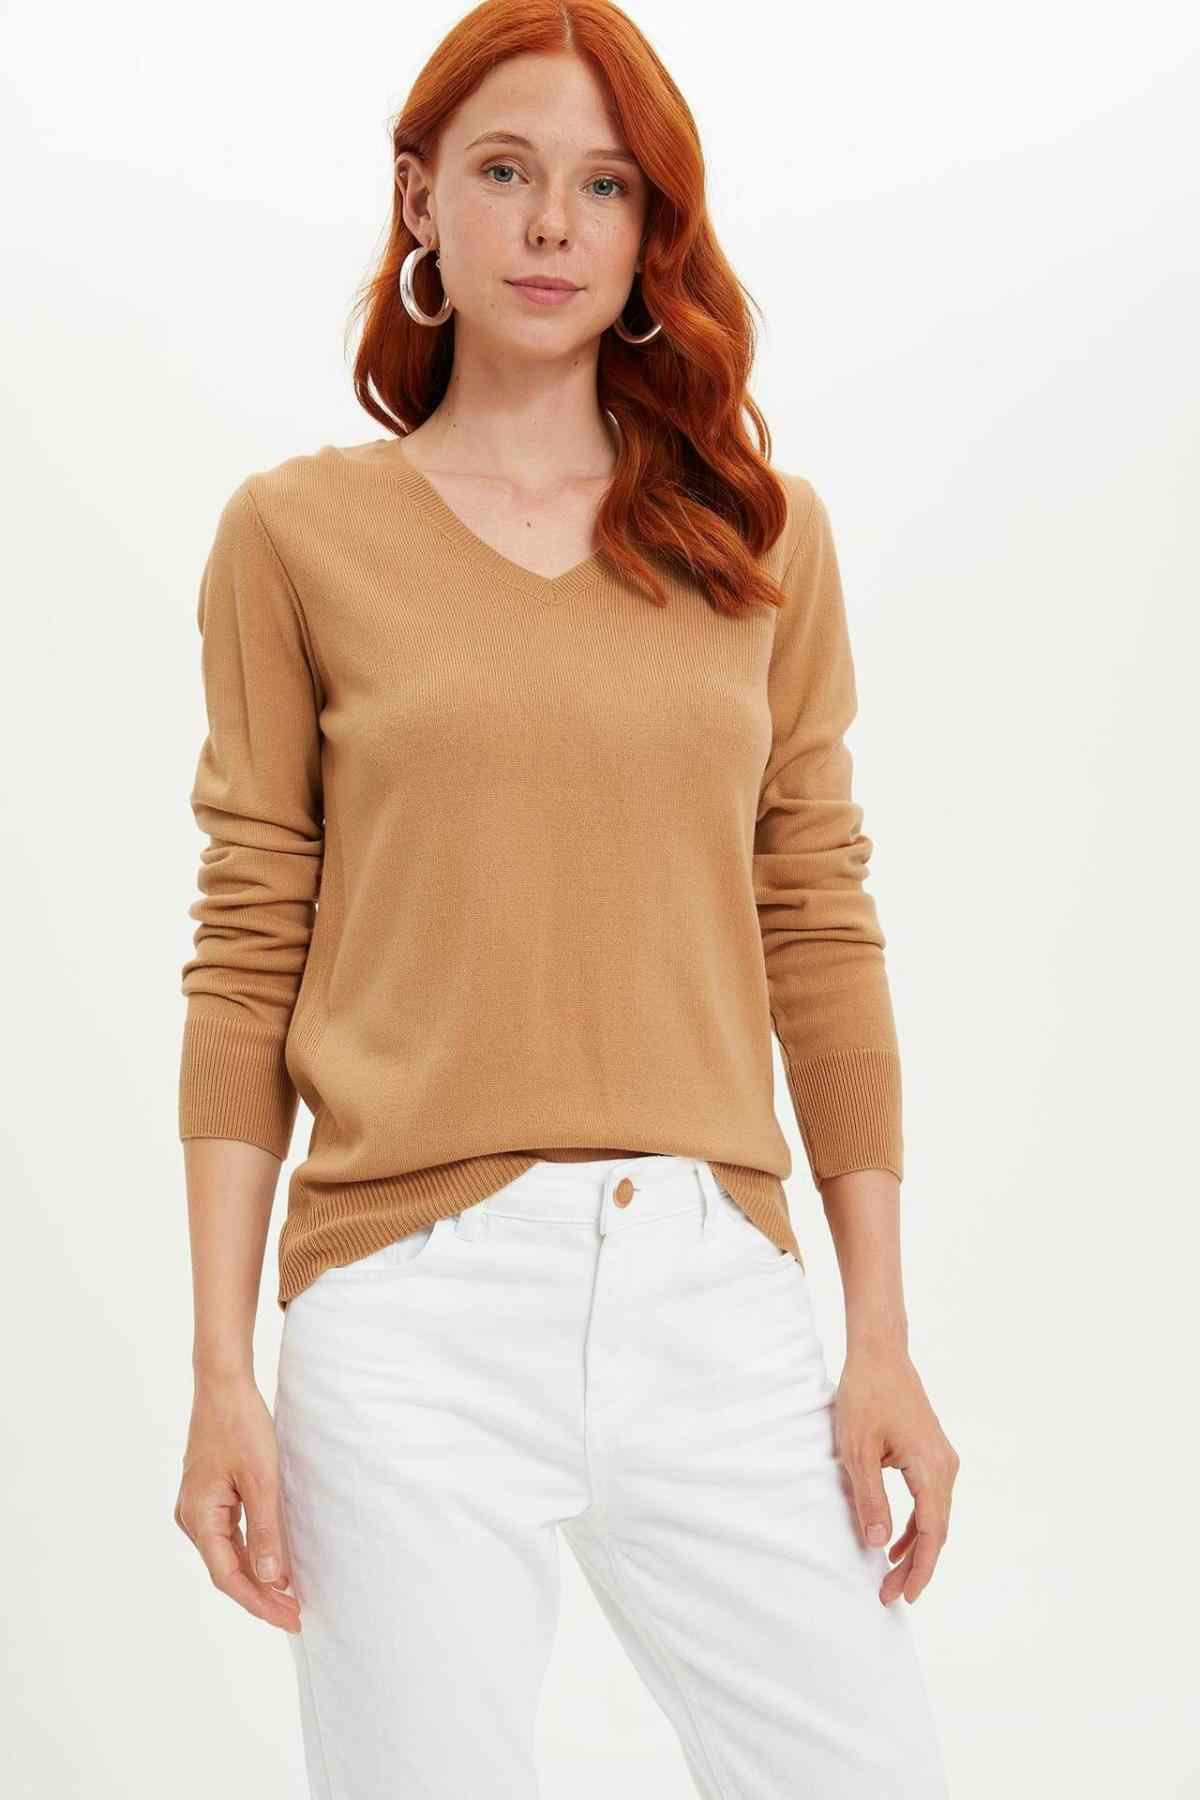 DeFacto Autumn Women Pure Color Soft Pullover Nude Red Casual Slim Knitted Sweater V-Neck Female Tops Long Sleeve-F7088AZ19AU